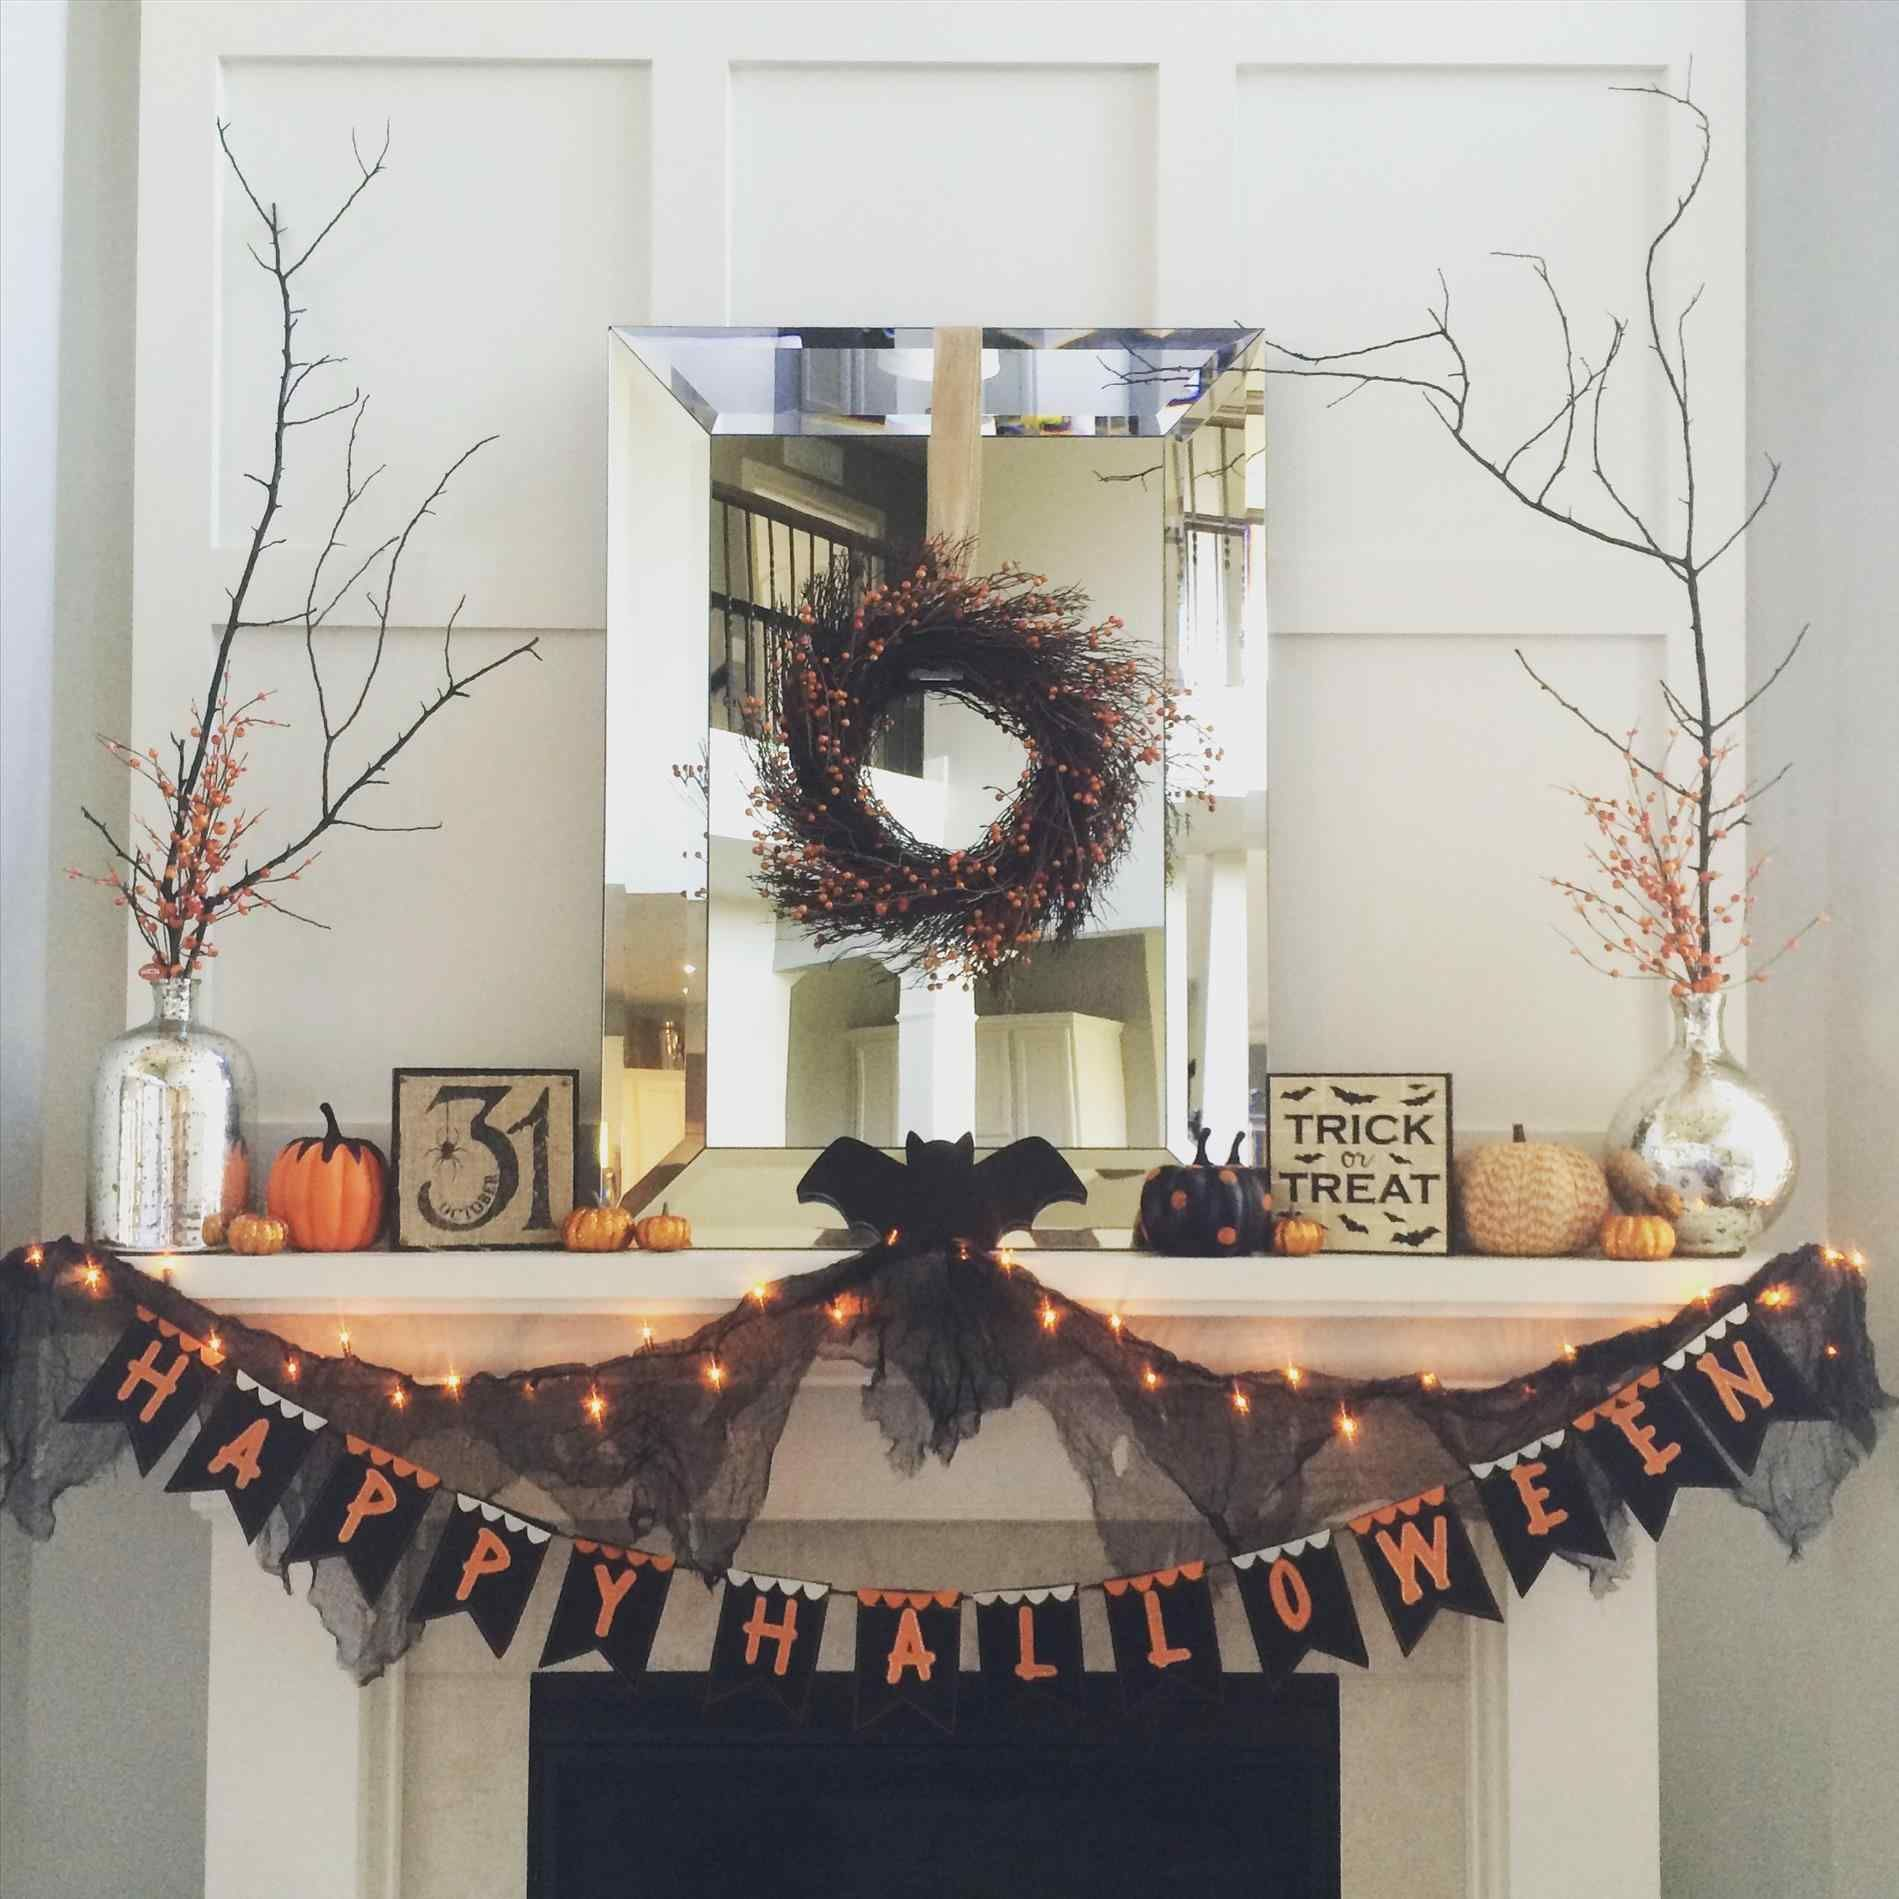 Top 9 Classy Halloween Decorations Ideas for Amazing Halloween - Elegant Halloween Decor